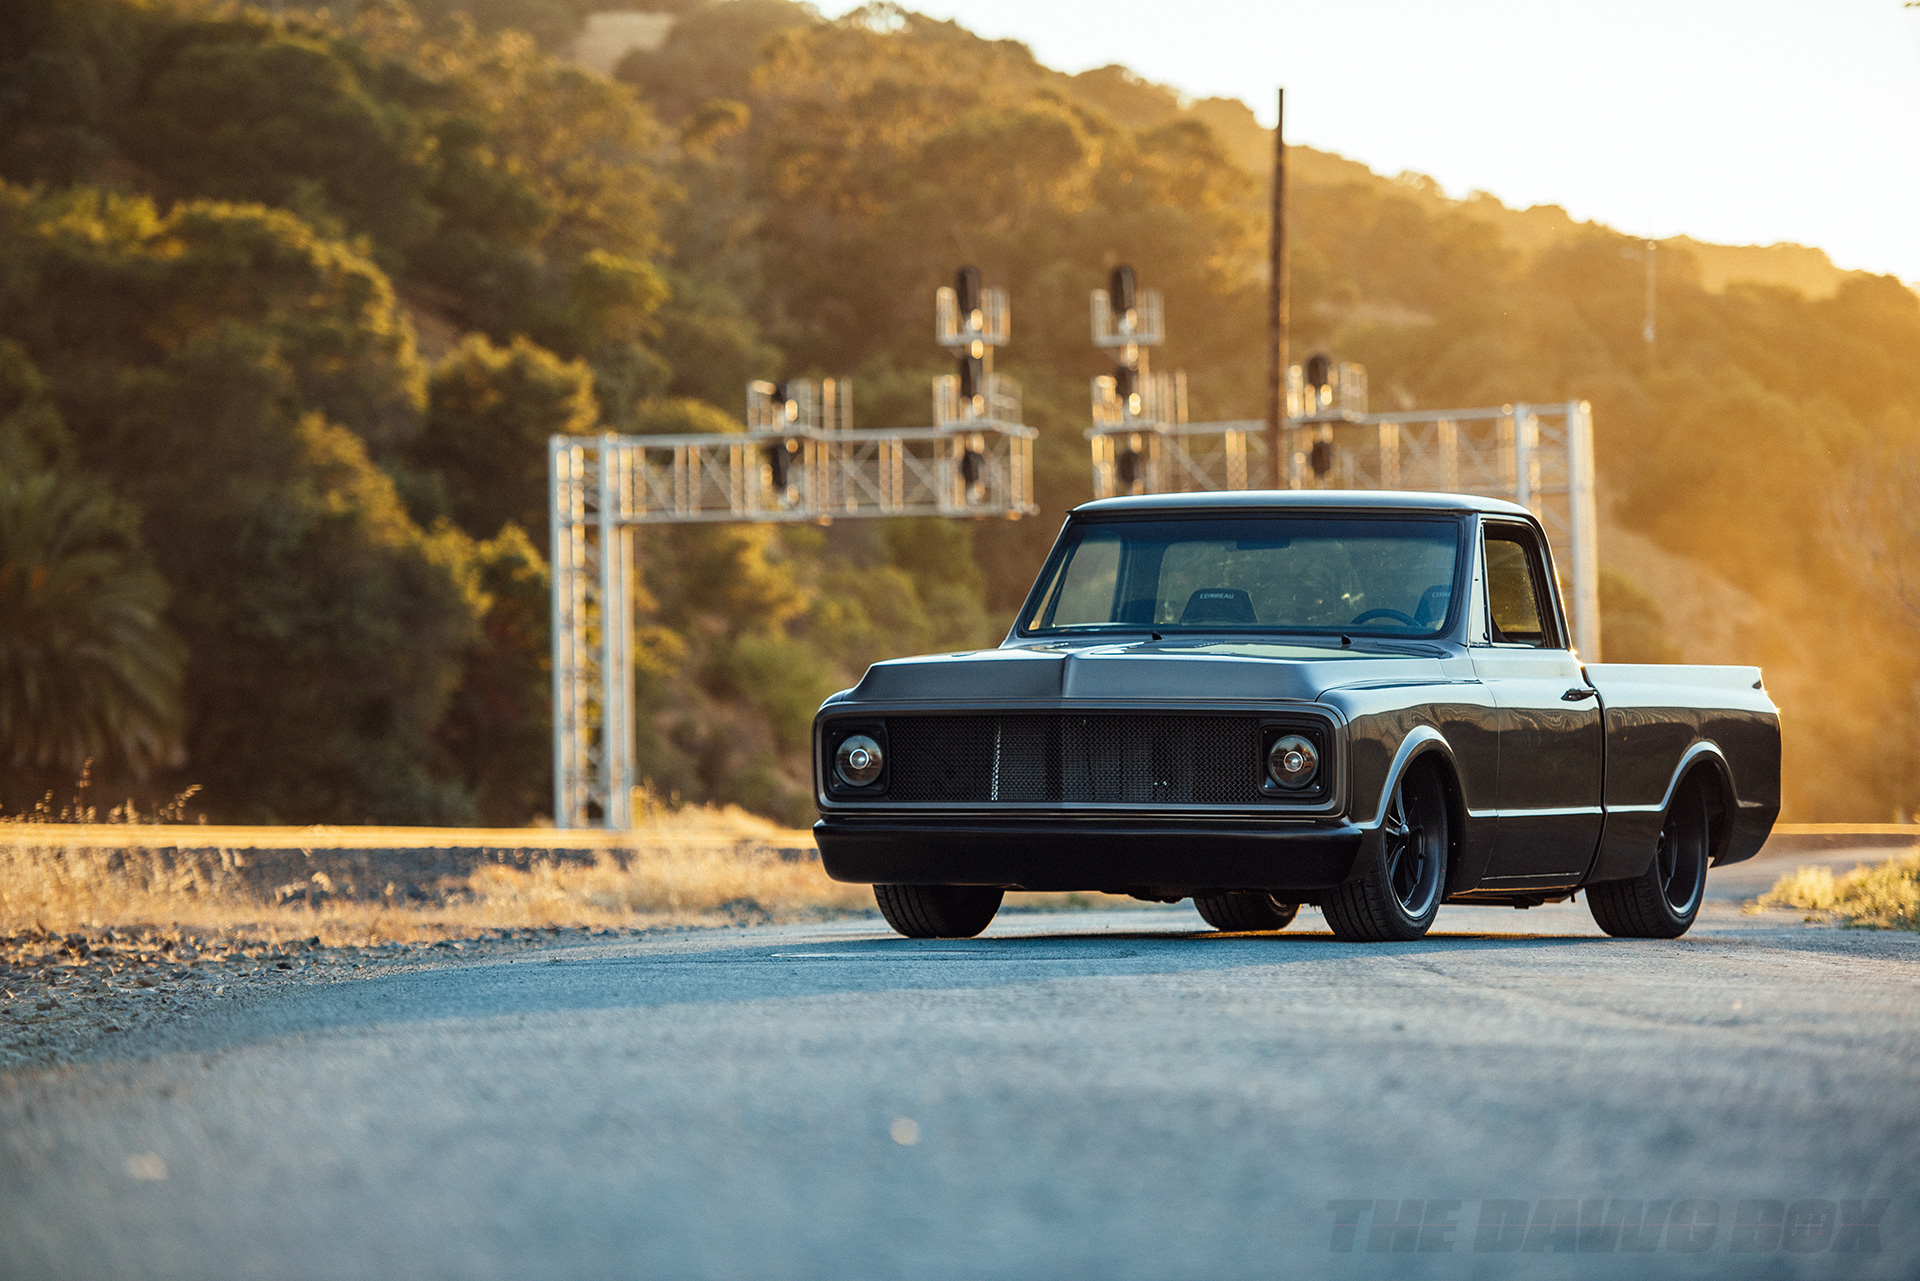 Third Time's The Charm: Dustin Reed's 1972 Chevy C10, Front